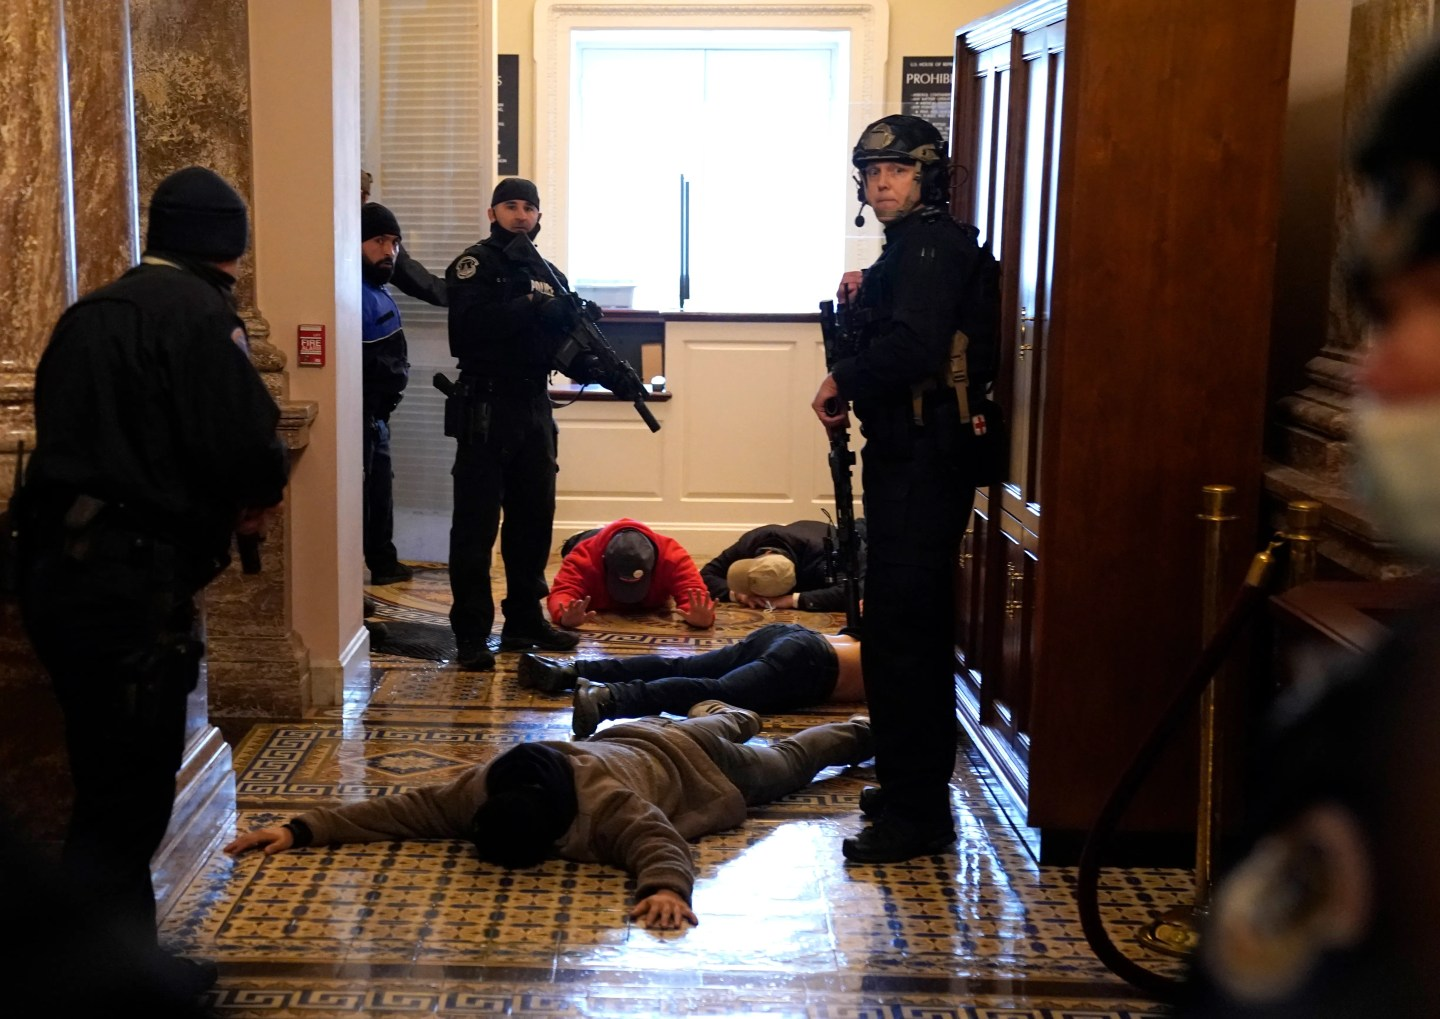 U.S. Capitol Police detain protesters at gunpoint outside of the House chamber, where a joint session of Congress had been meeting Jan. 6 to confirm the votes of the Electoral College.